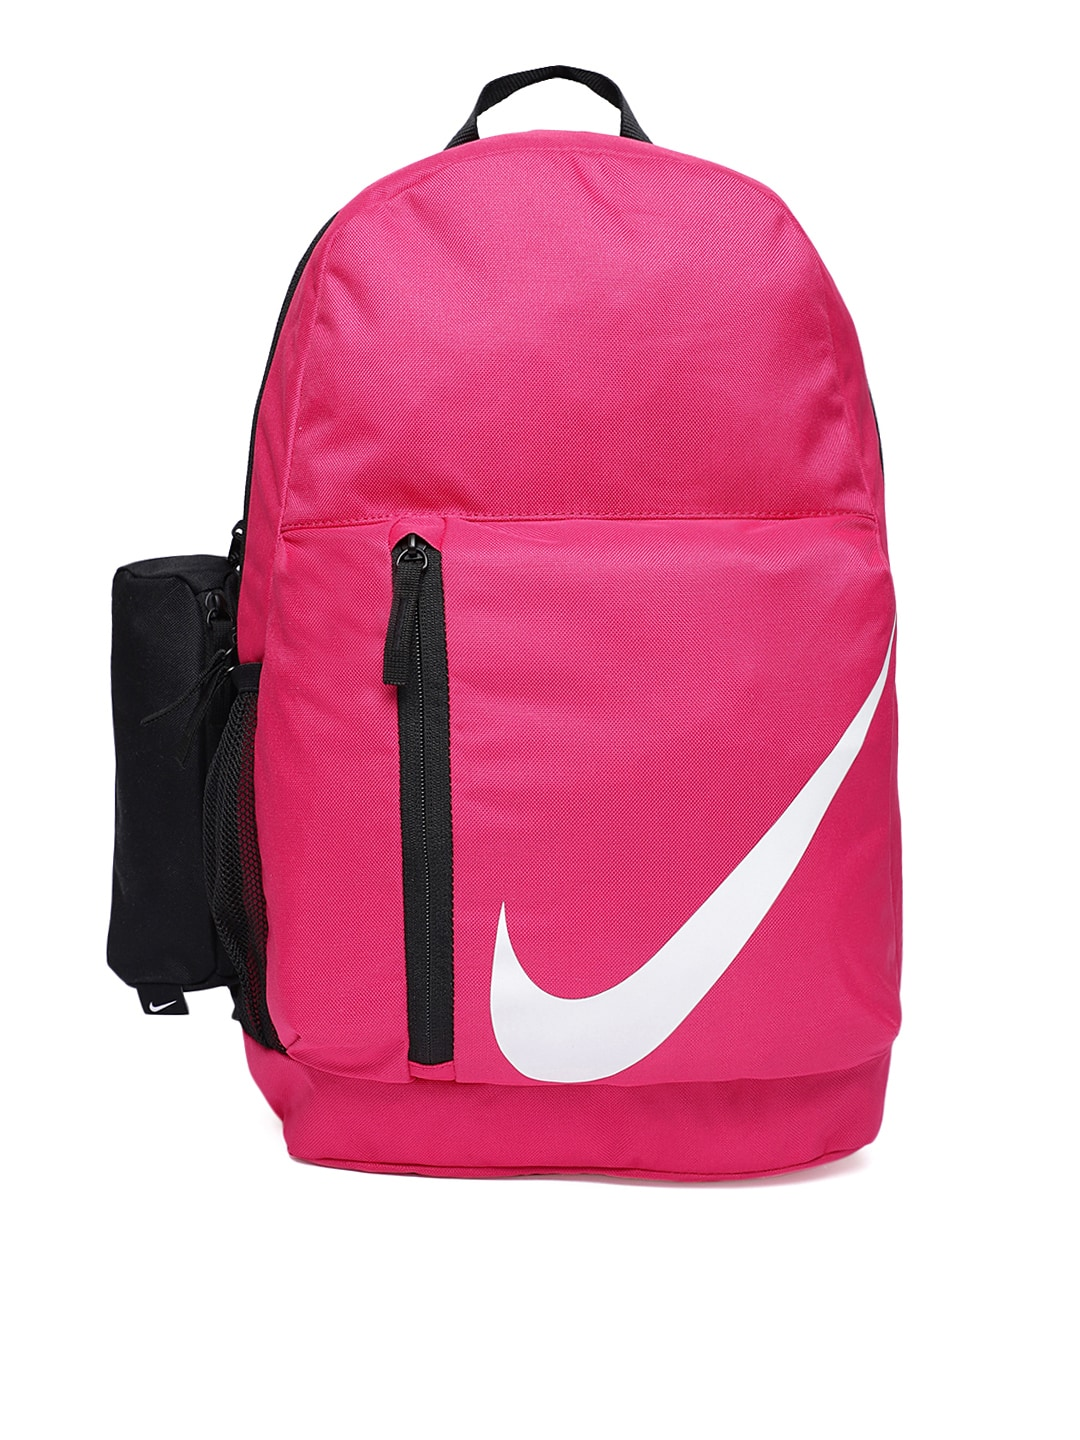 50b2a38acb7d Nike Adidas Backpacks Laptop Bags - Buy Nike Adidas Backpacks Laptop Bags  online in India